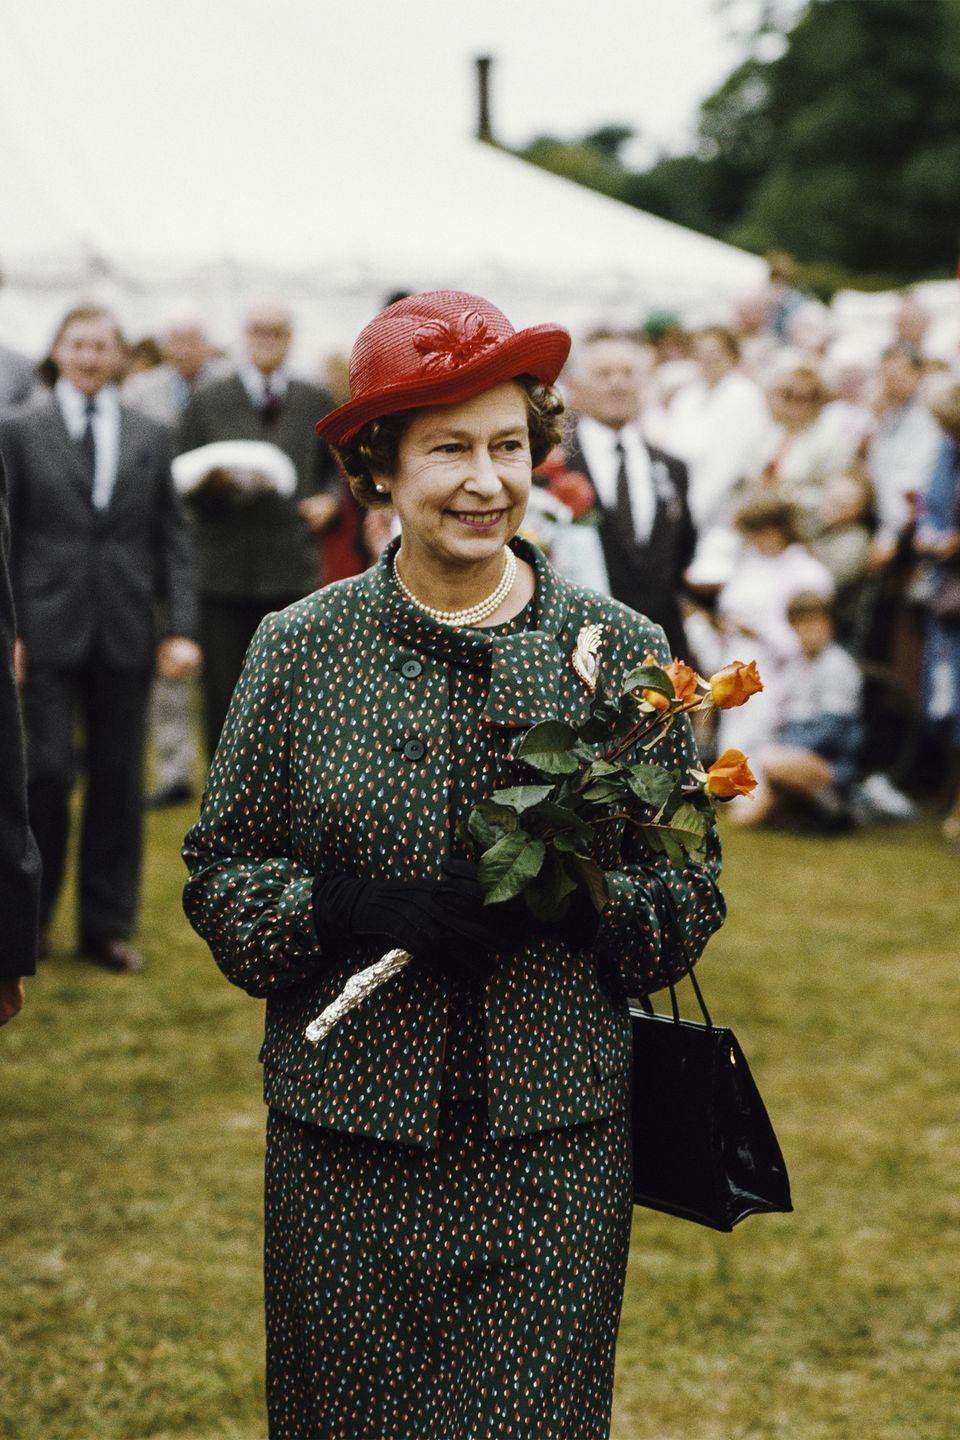 <p>The queen looked marvelous in a green printed suit with flares of orange and white during the Sandringham Flower Show in Sandringham, Norfolk.<br></p>